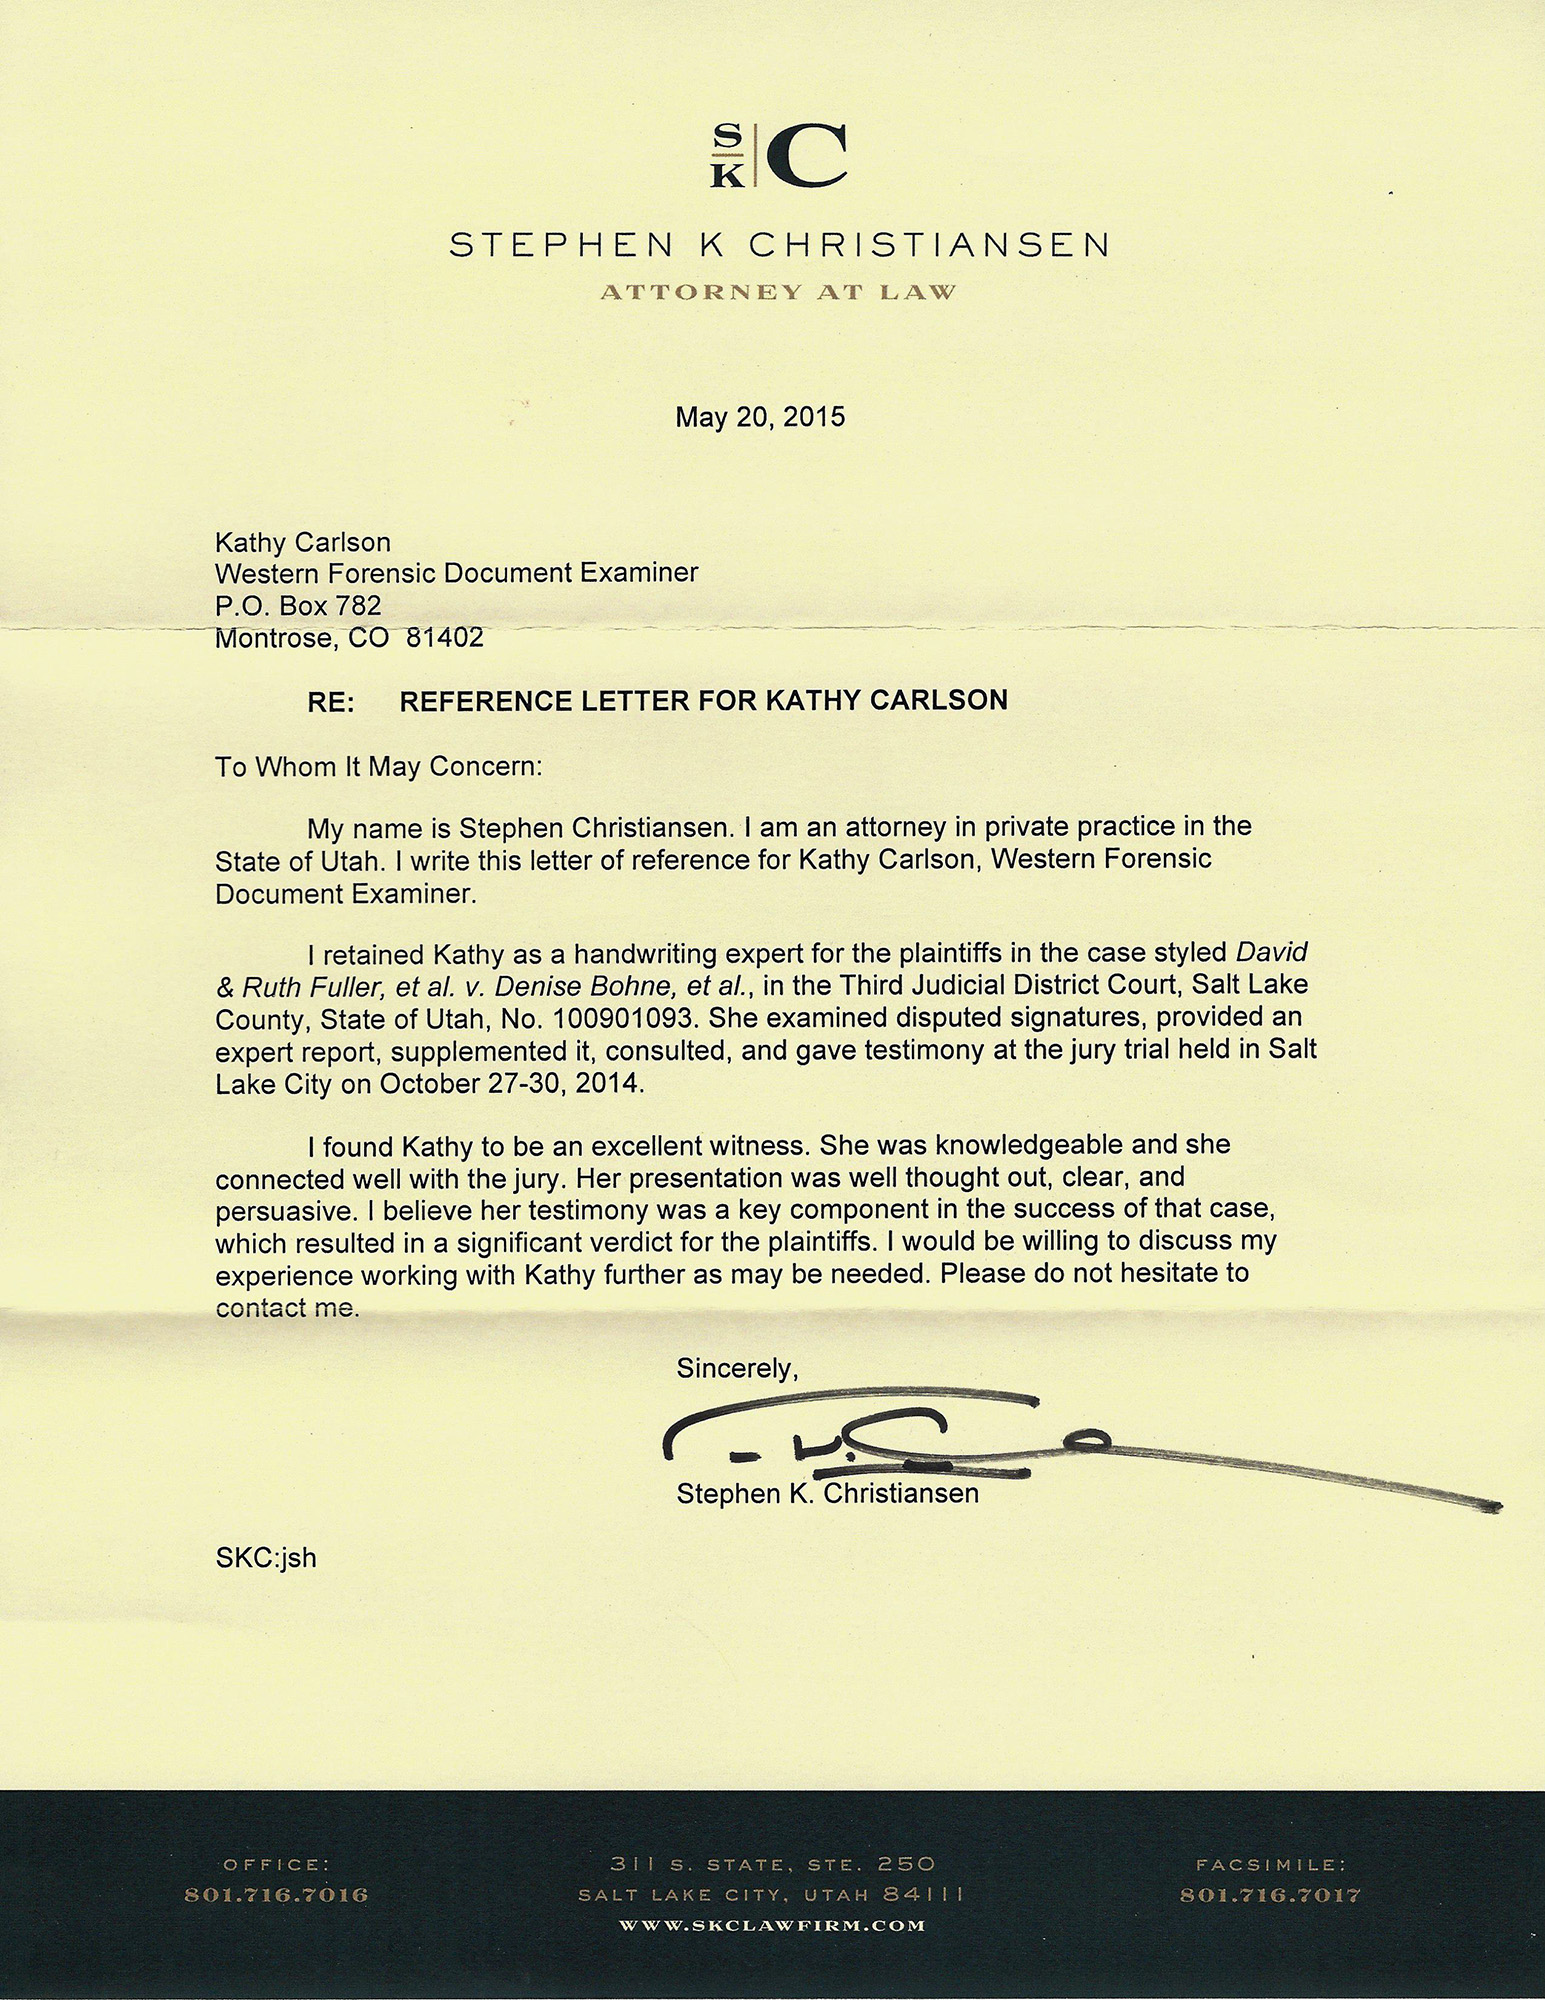 Letter of Recomendation from Stephen Christiansen